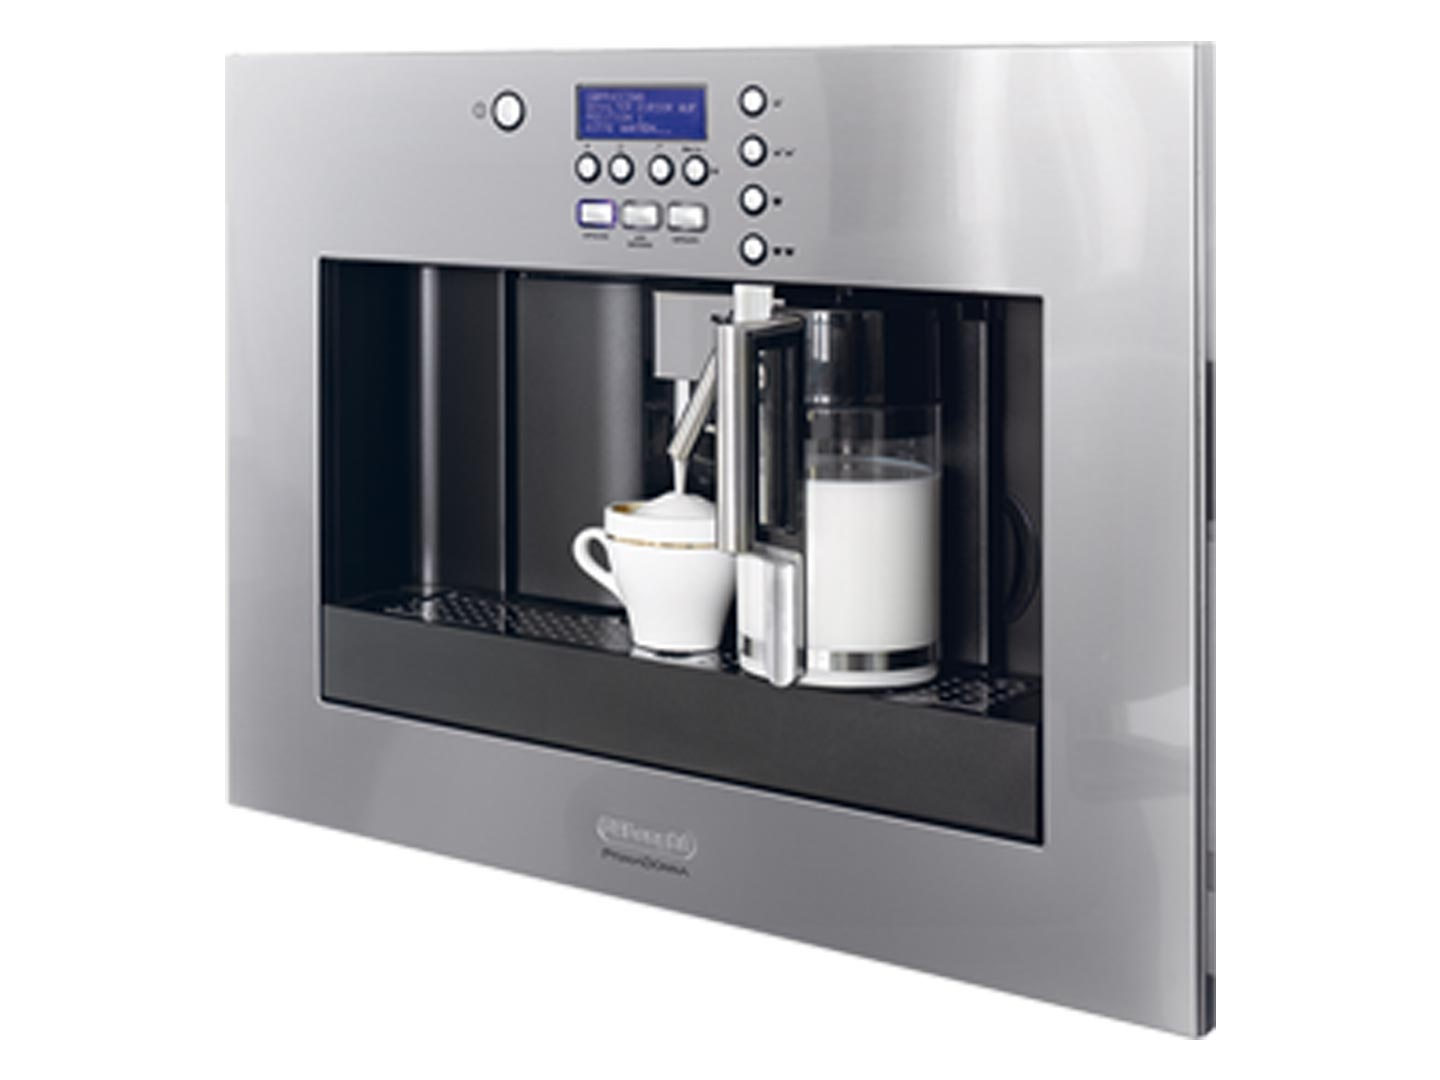 delonghi eabi6600 primadonna coffee machine home clearance. Black Bedroom Furniture Sets. Home Design Ideas